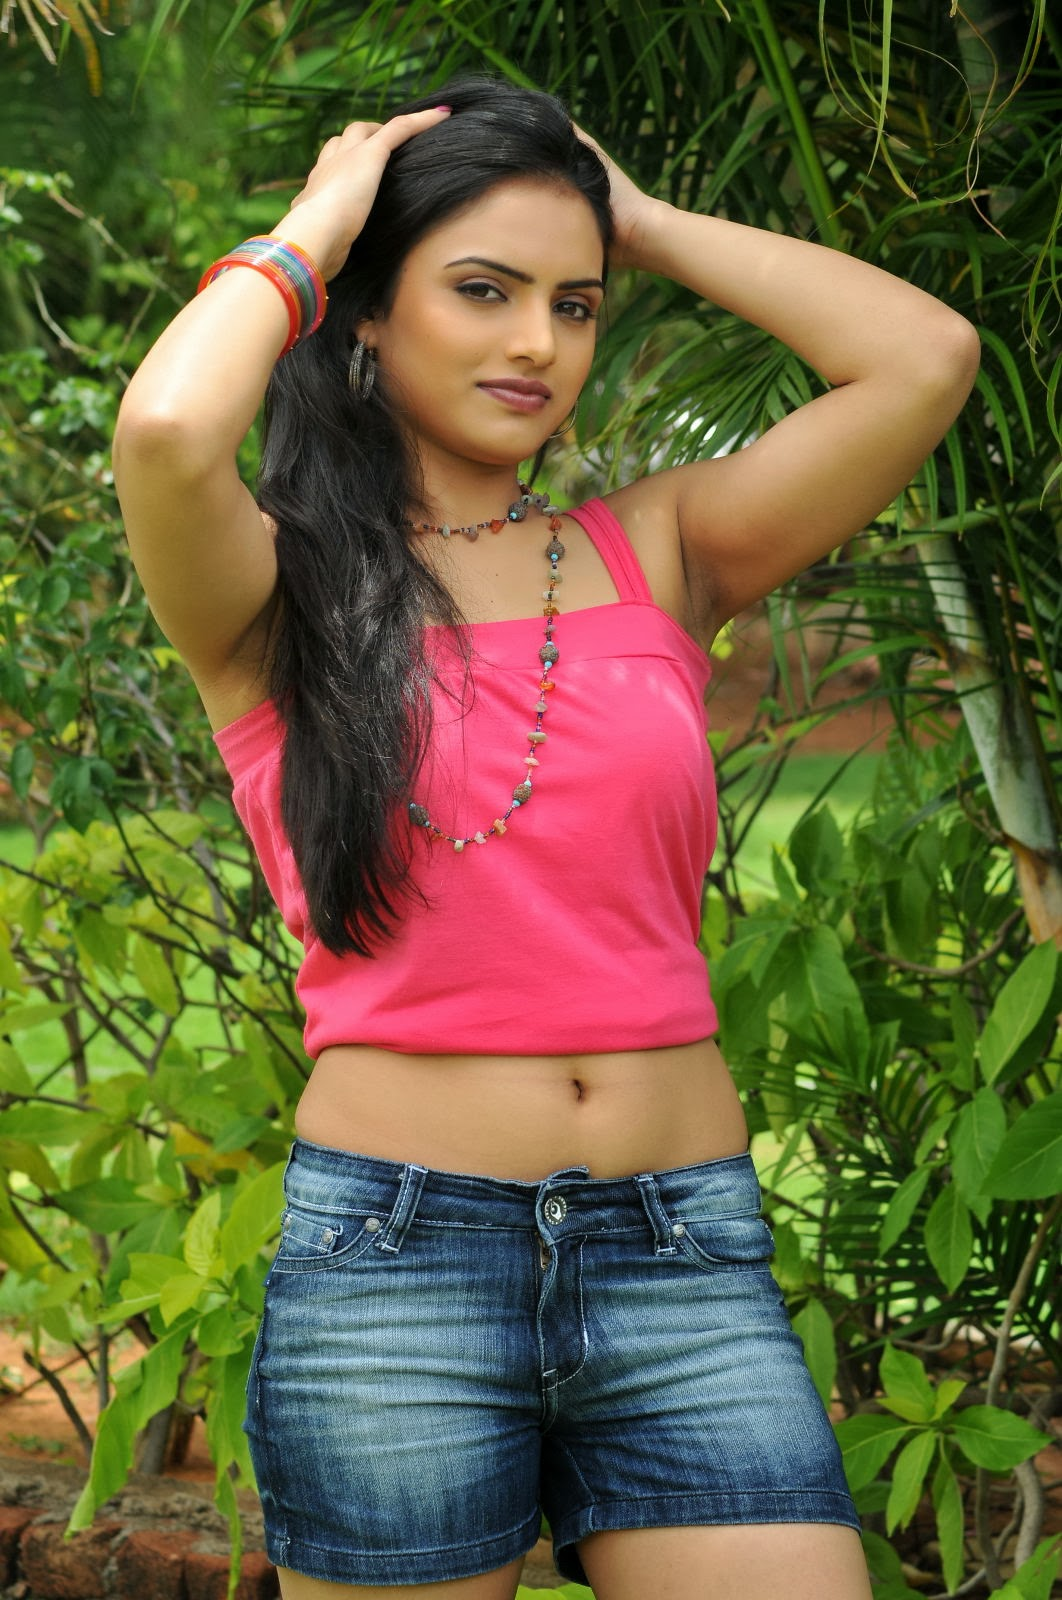 Bollywood, Tollywood, rosy, fine, hot sexy actress sizzling, spicy, masala, curvy, pic collection, image gallery